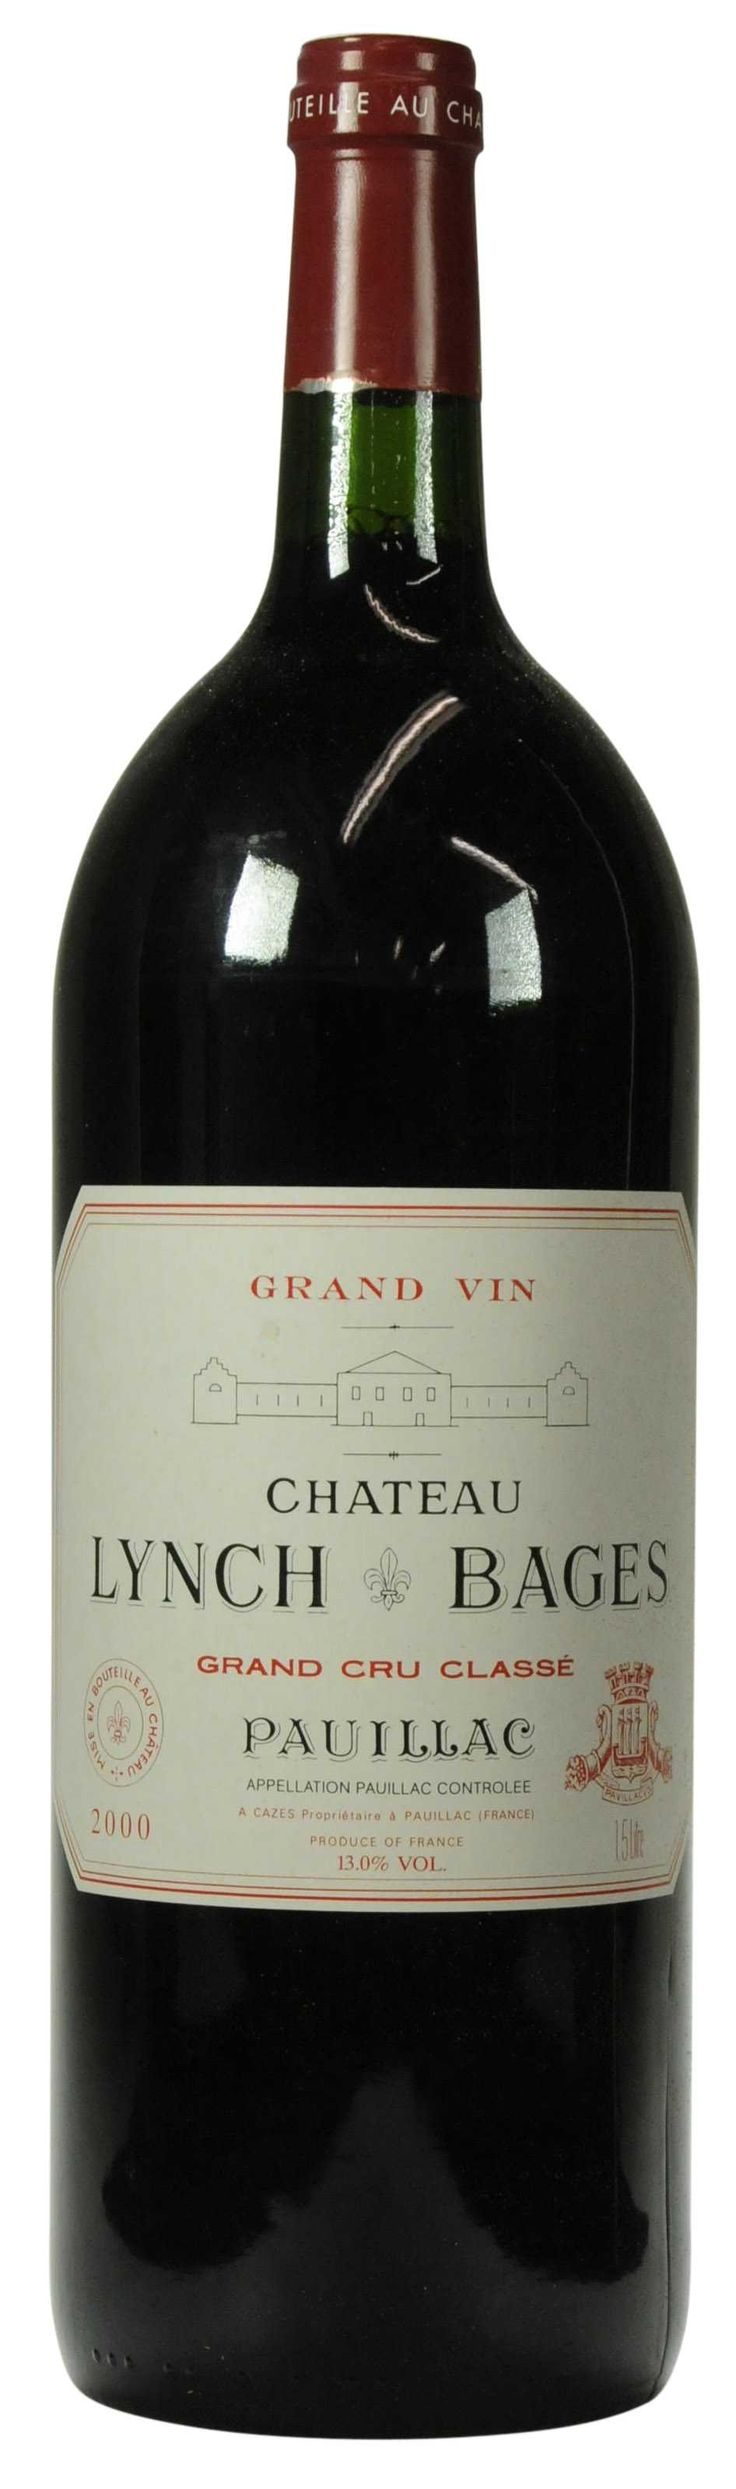 Château Lynch-Bages 2000  l Christie's Signature Cellars - Online Wine Auction New York Going on NOW- 18 February - 27 February...CLICK TO BID!